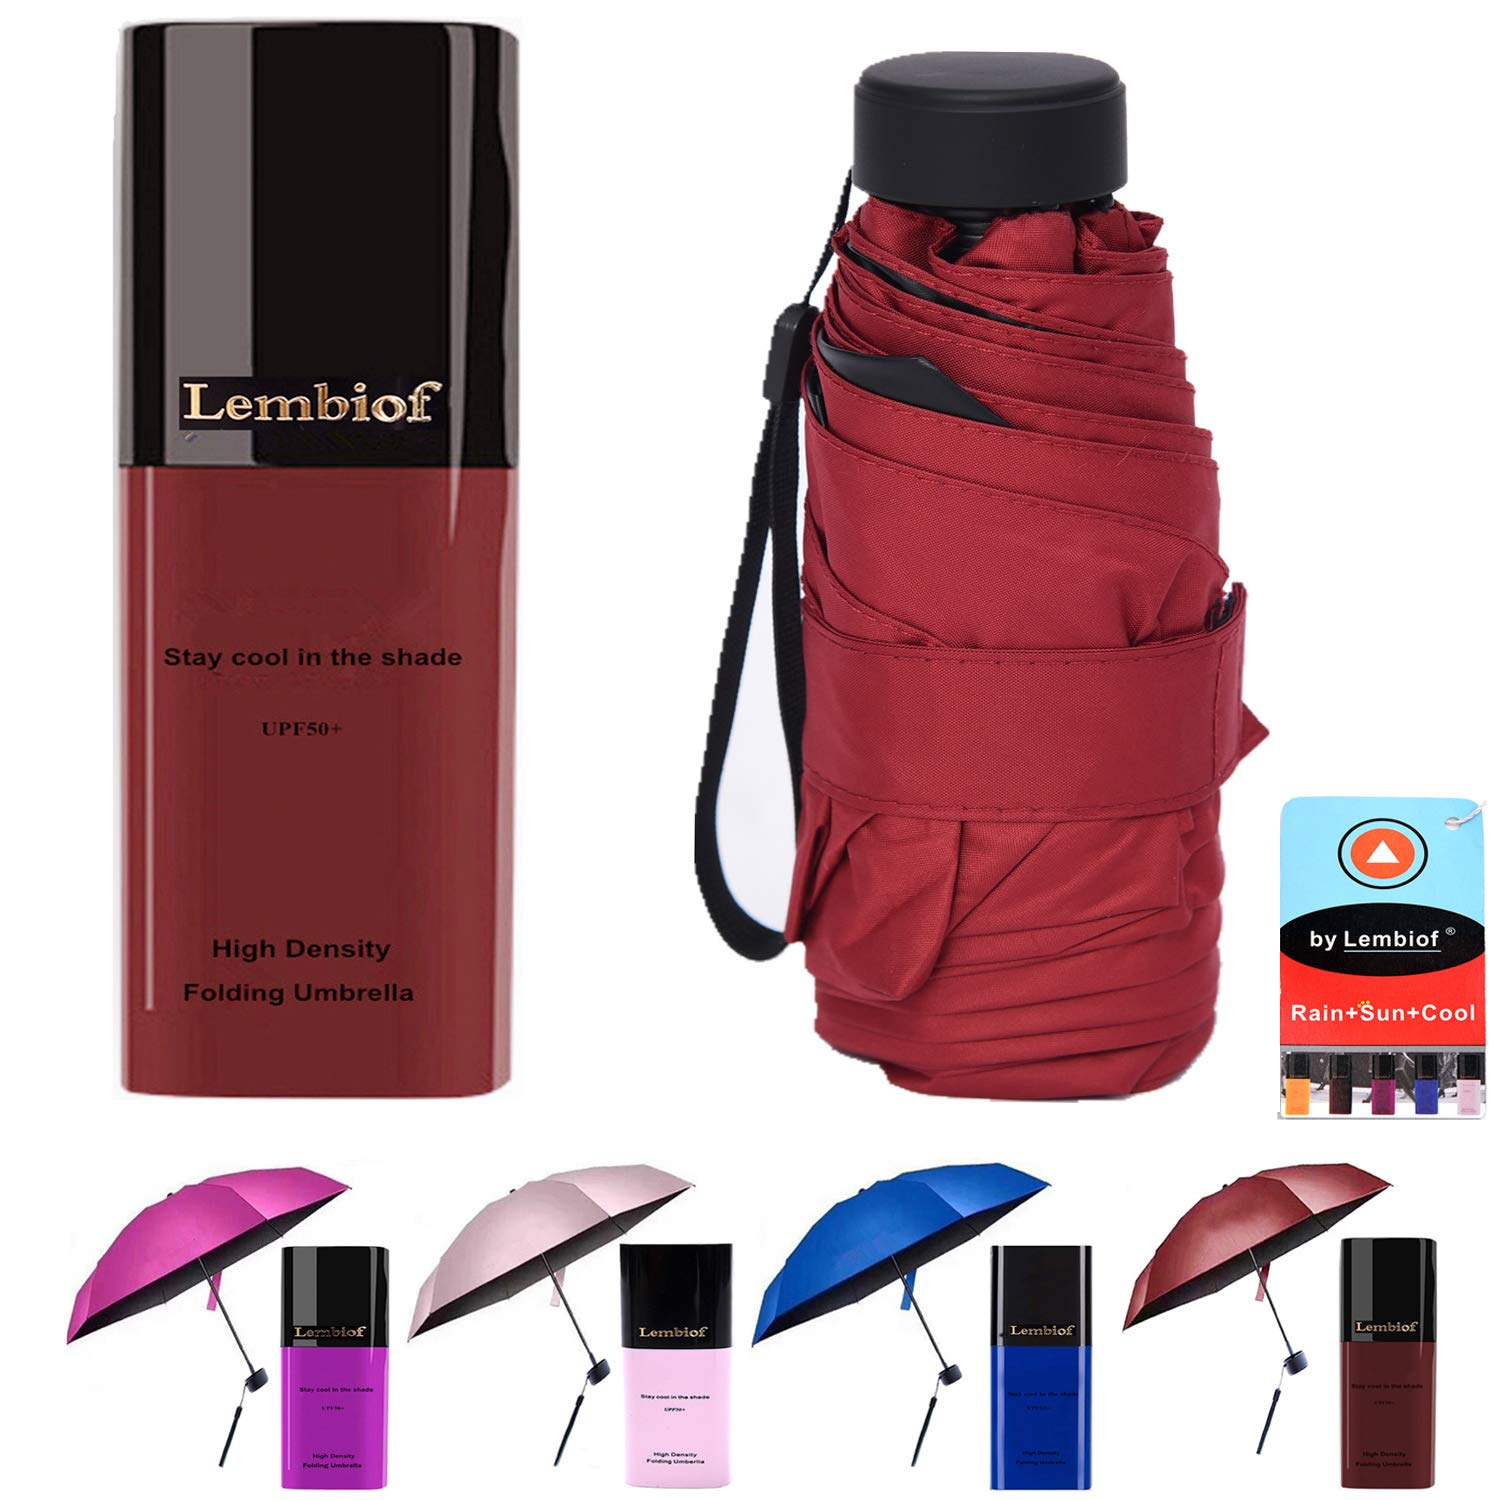 Compact Travel Umbrella with Waterproof Case, 6 Ultra Strong Ribs Finest 99% UV Protection Outdoor Umbrella for Women and Men (Wine Red)